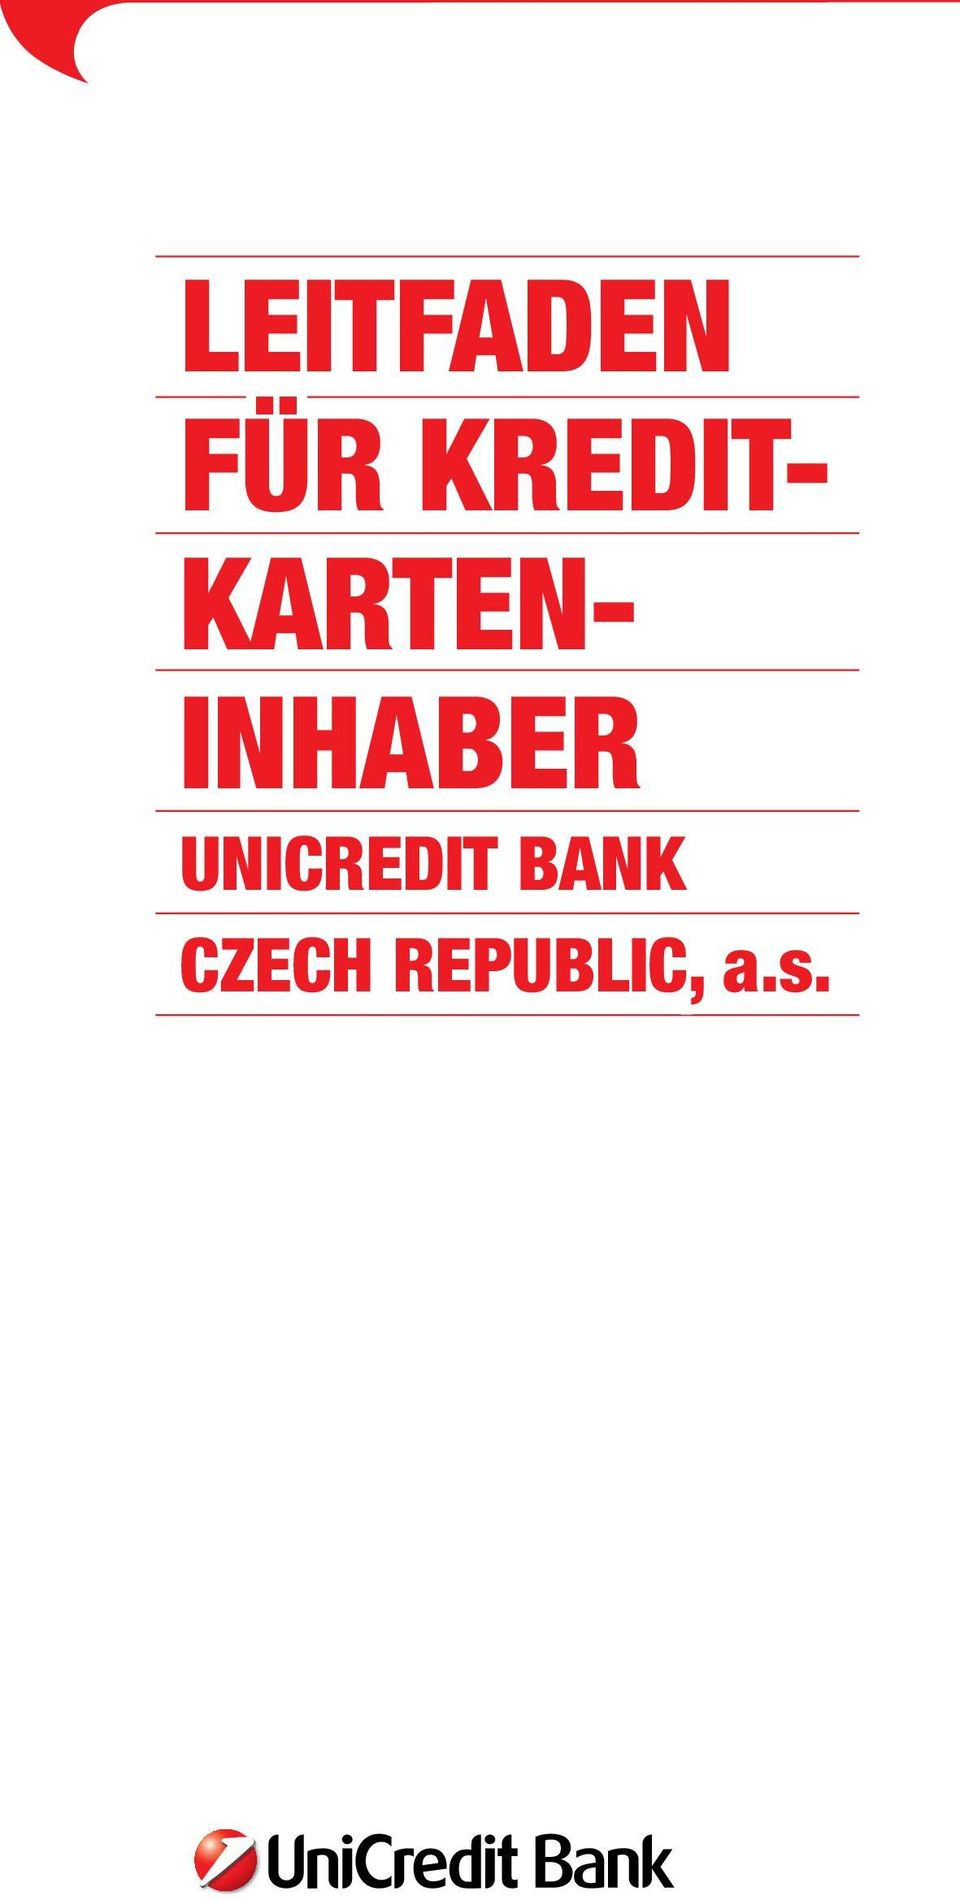 INHABER UNICREDIT